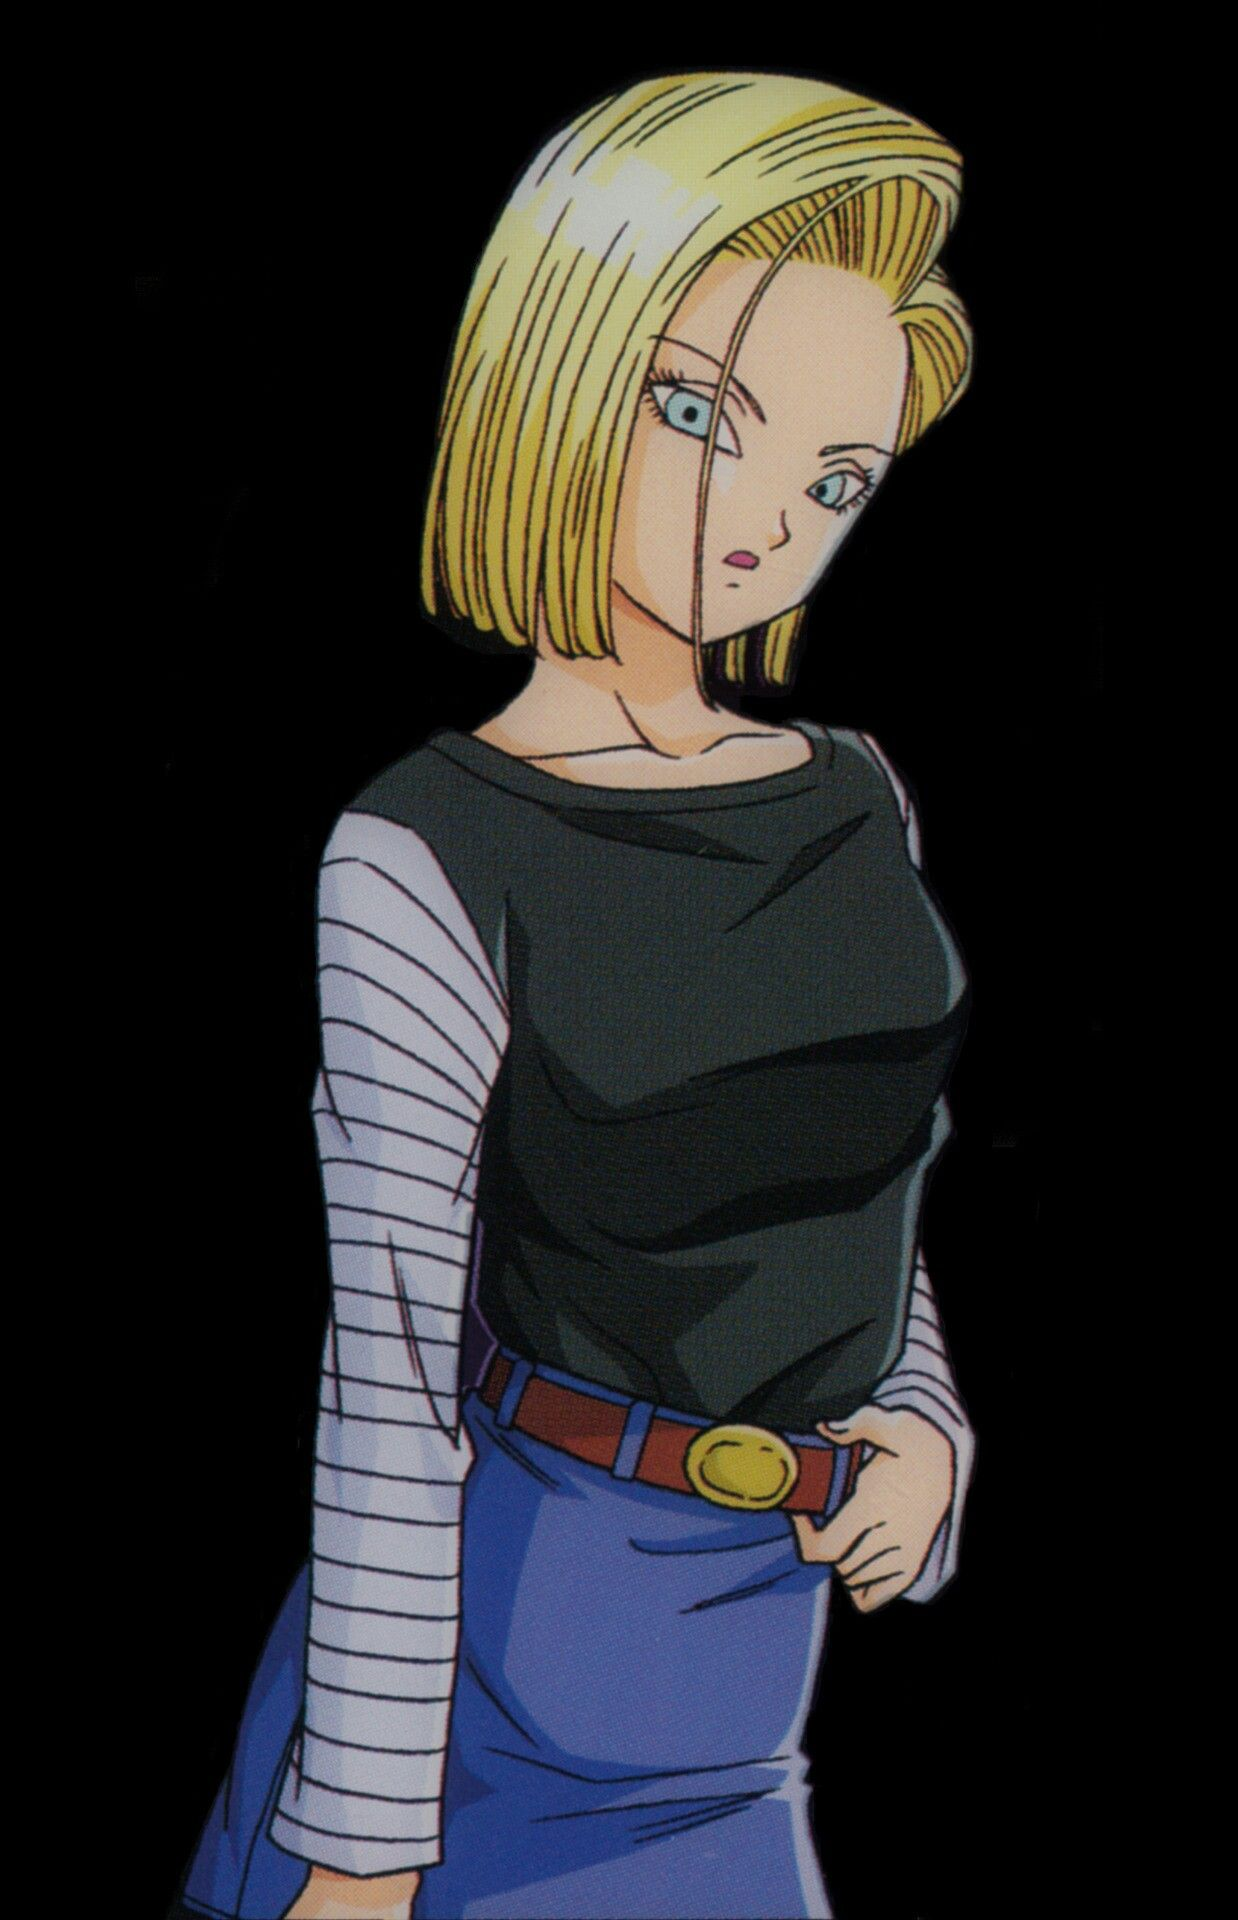 Dragon ball z majin buu saga fan art android 18 android 18 pinterest android 18 dragon - Dragon ball zc 18 ...